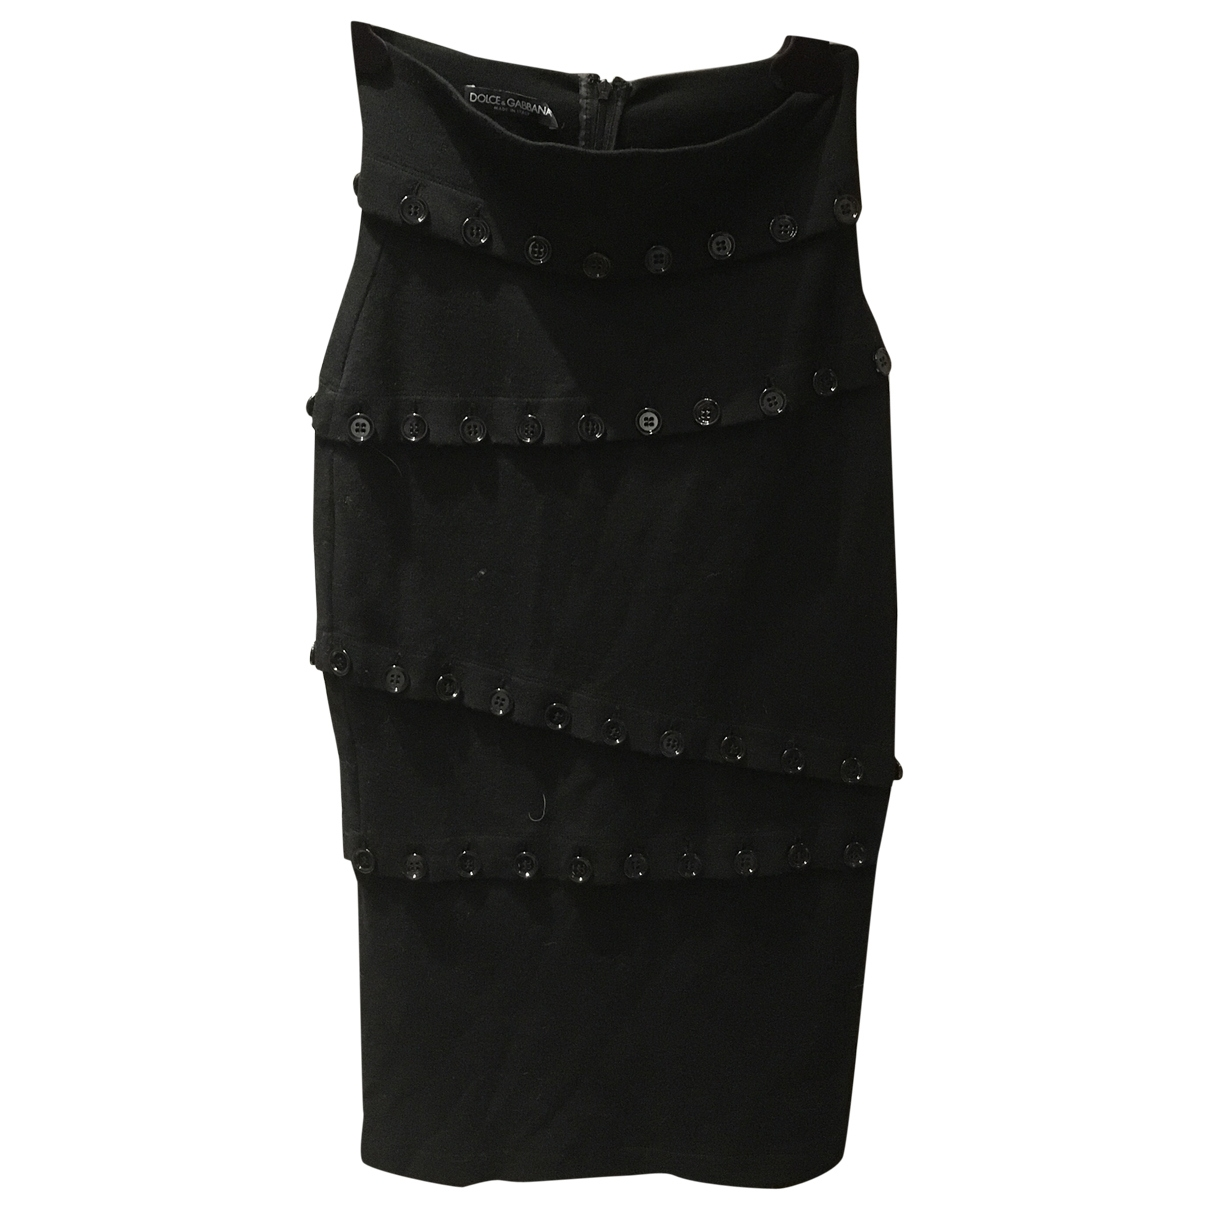 Dolce & Gabbana \N Black skirt for Women 40 IT